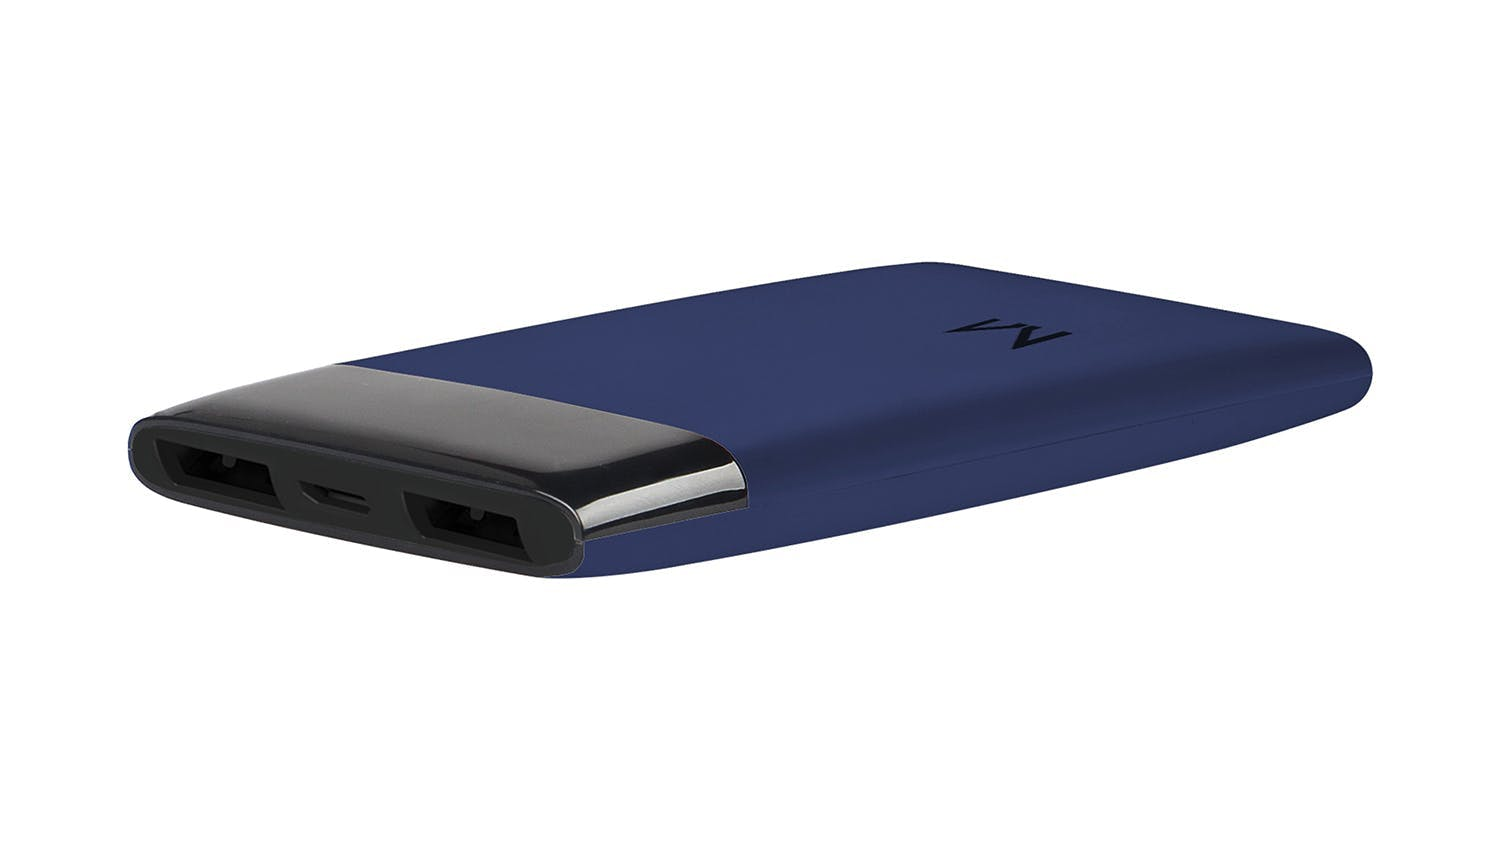 Moyork Watt 5000mAh Power Bank - Midnight Blue